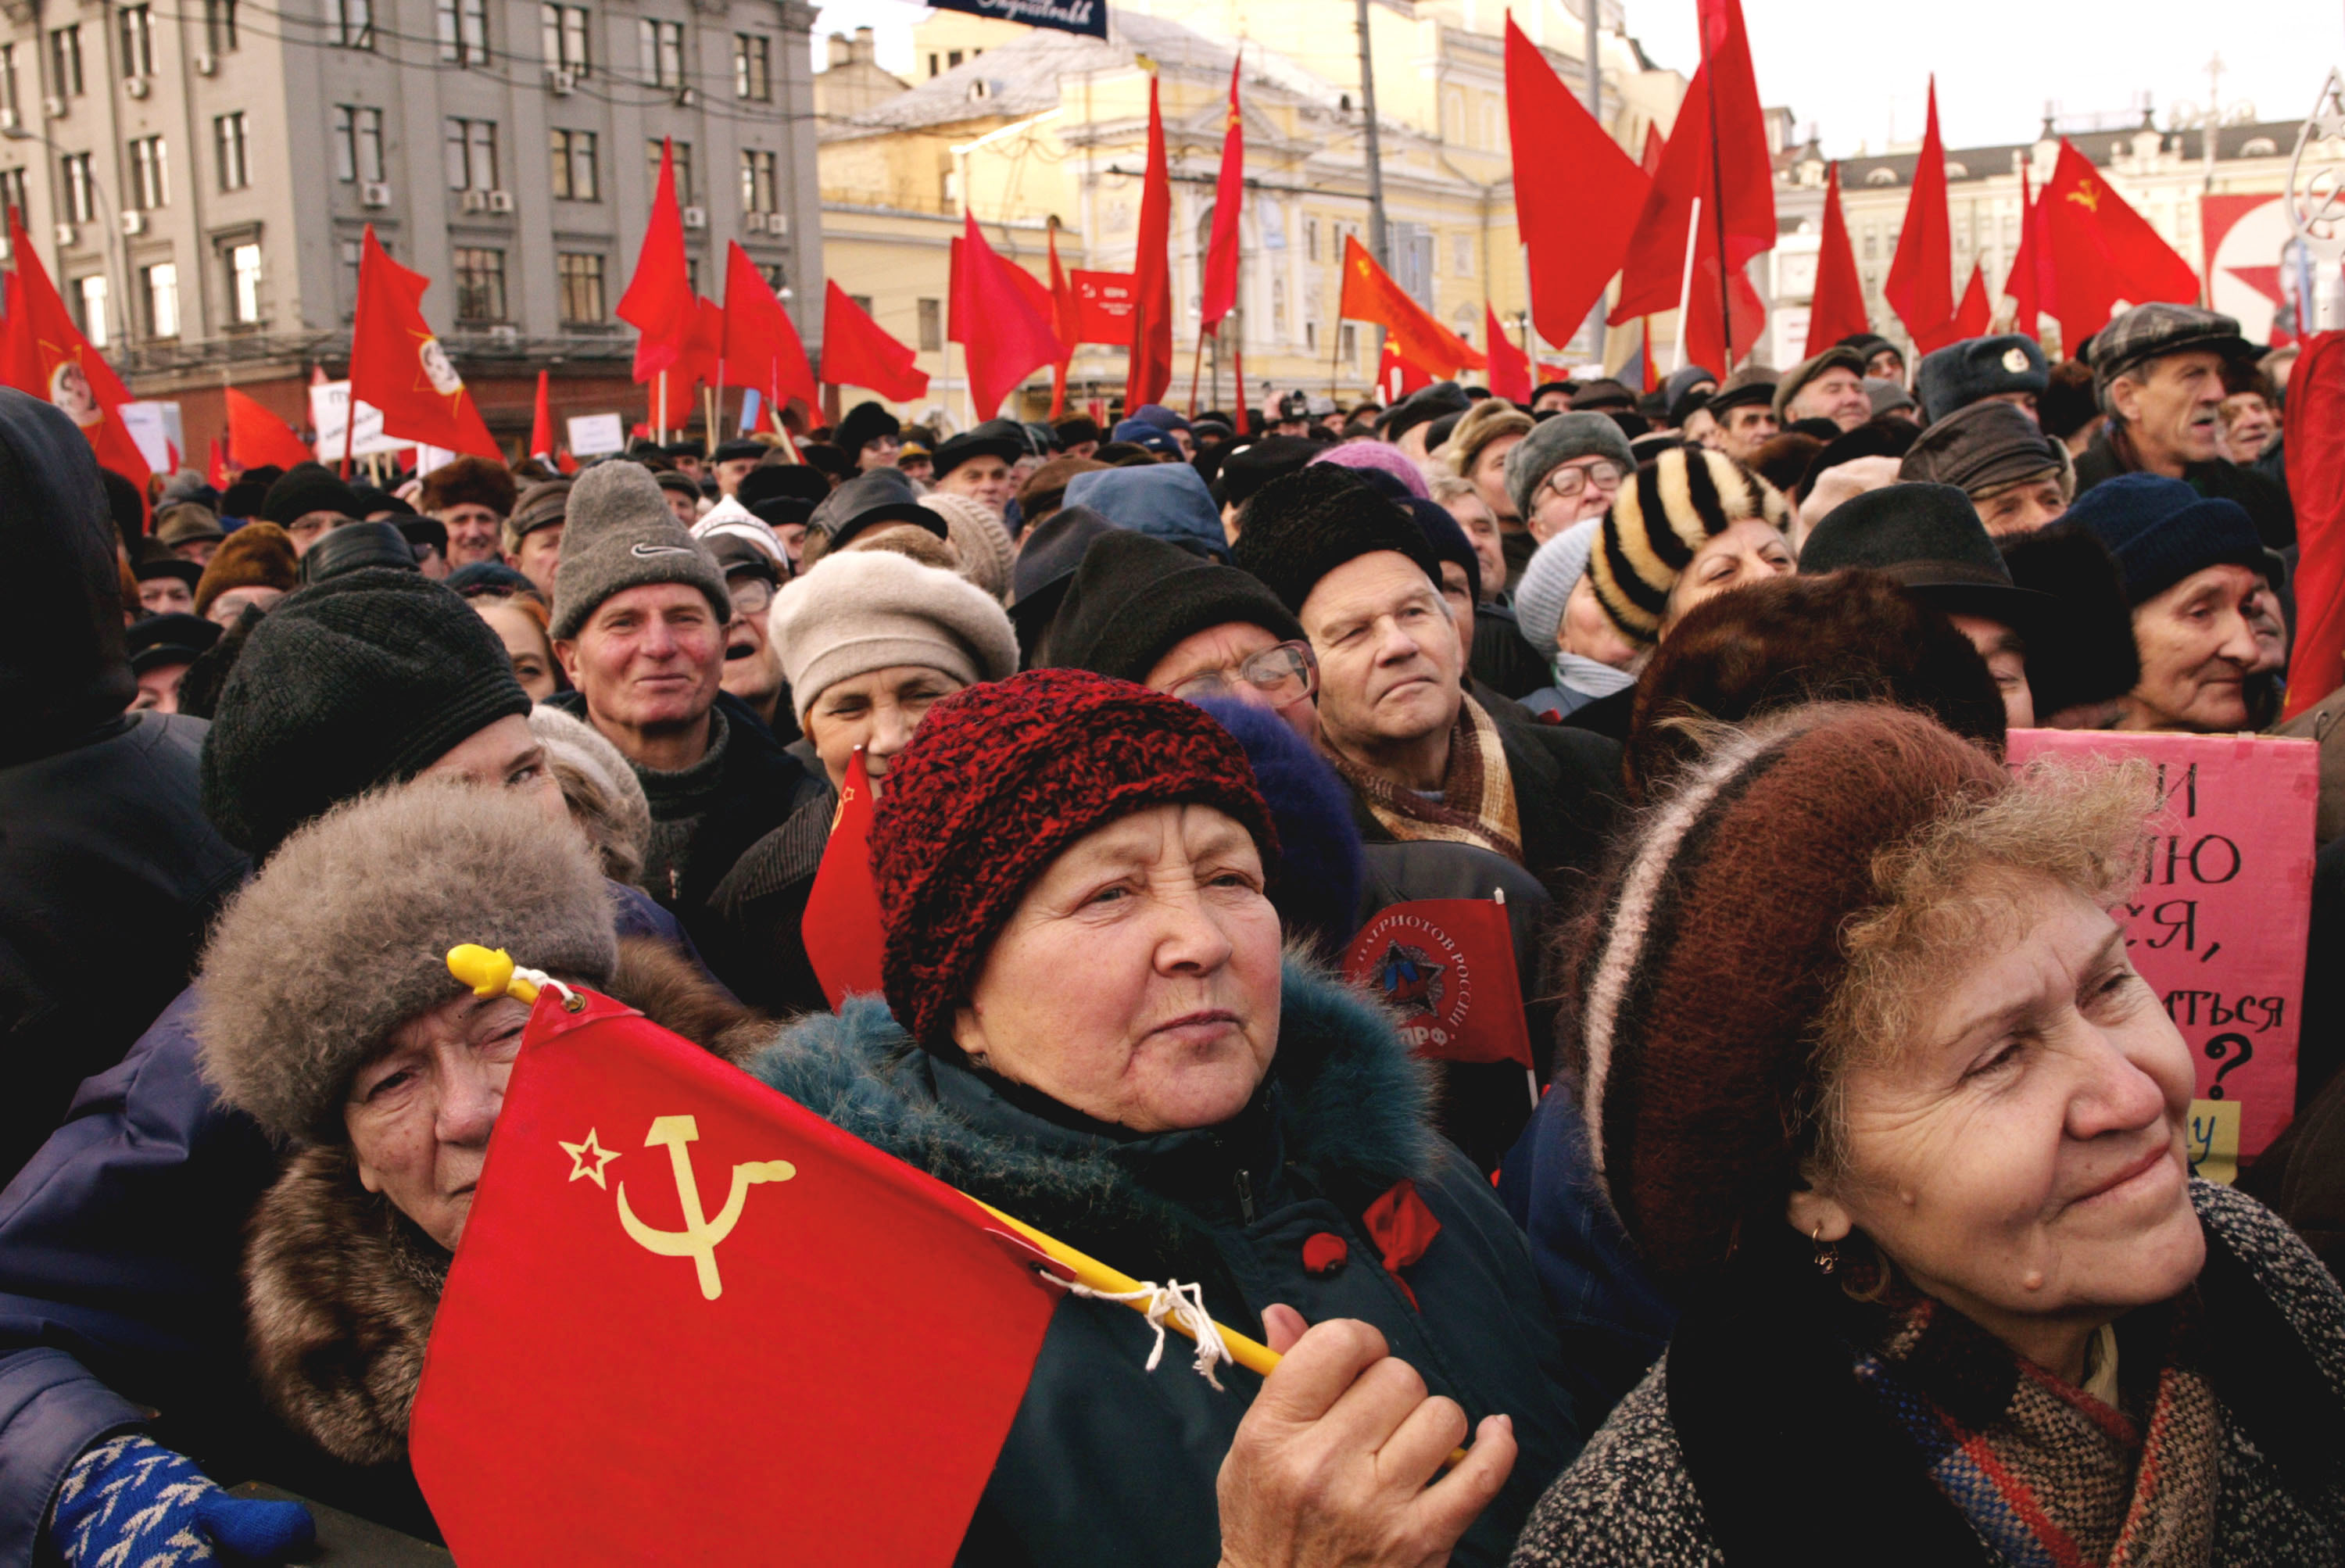 Older Communist supporters hold Soviet flags as they march to commemorate the 1917 Bolshevik revolution November 7, 2002 in Moscow, Russia.